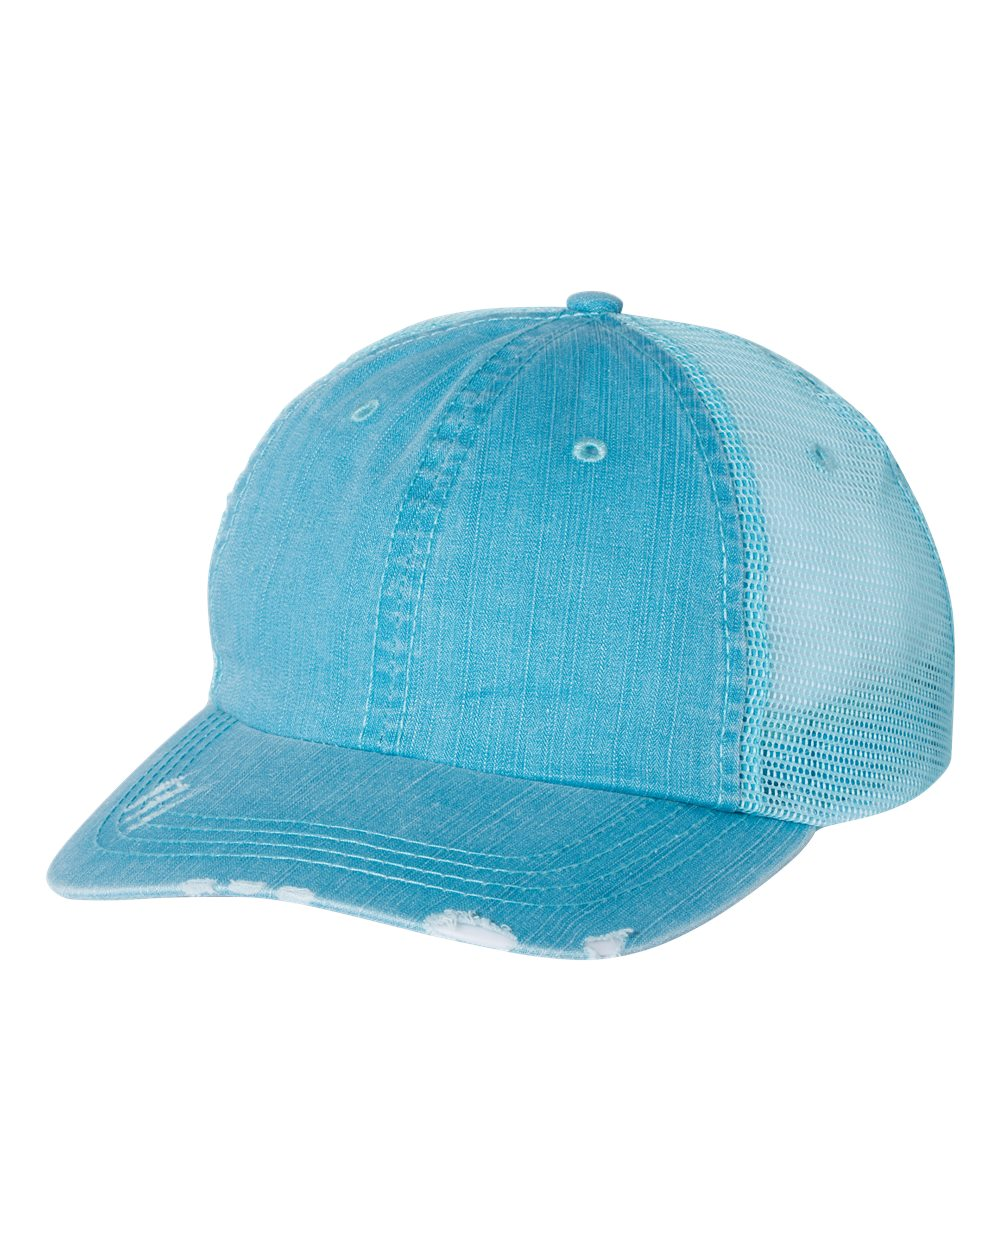 aqua blue trucker hat FMWIB CUSTOM LEATHER PATCH